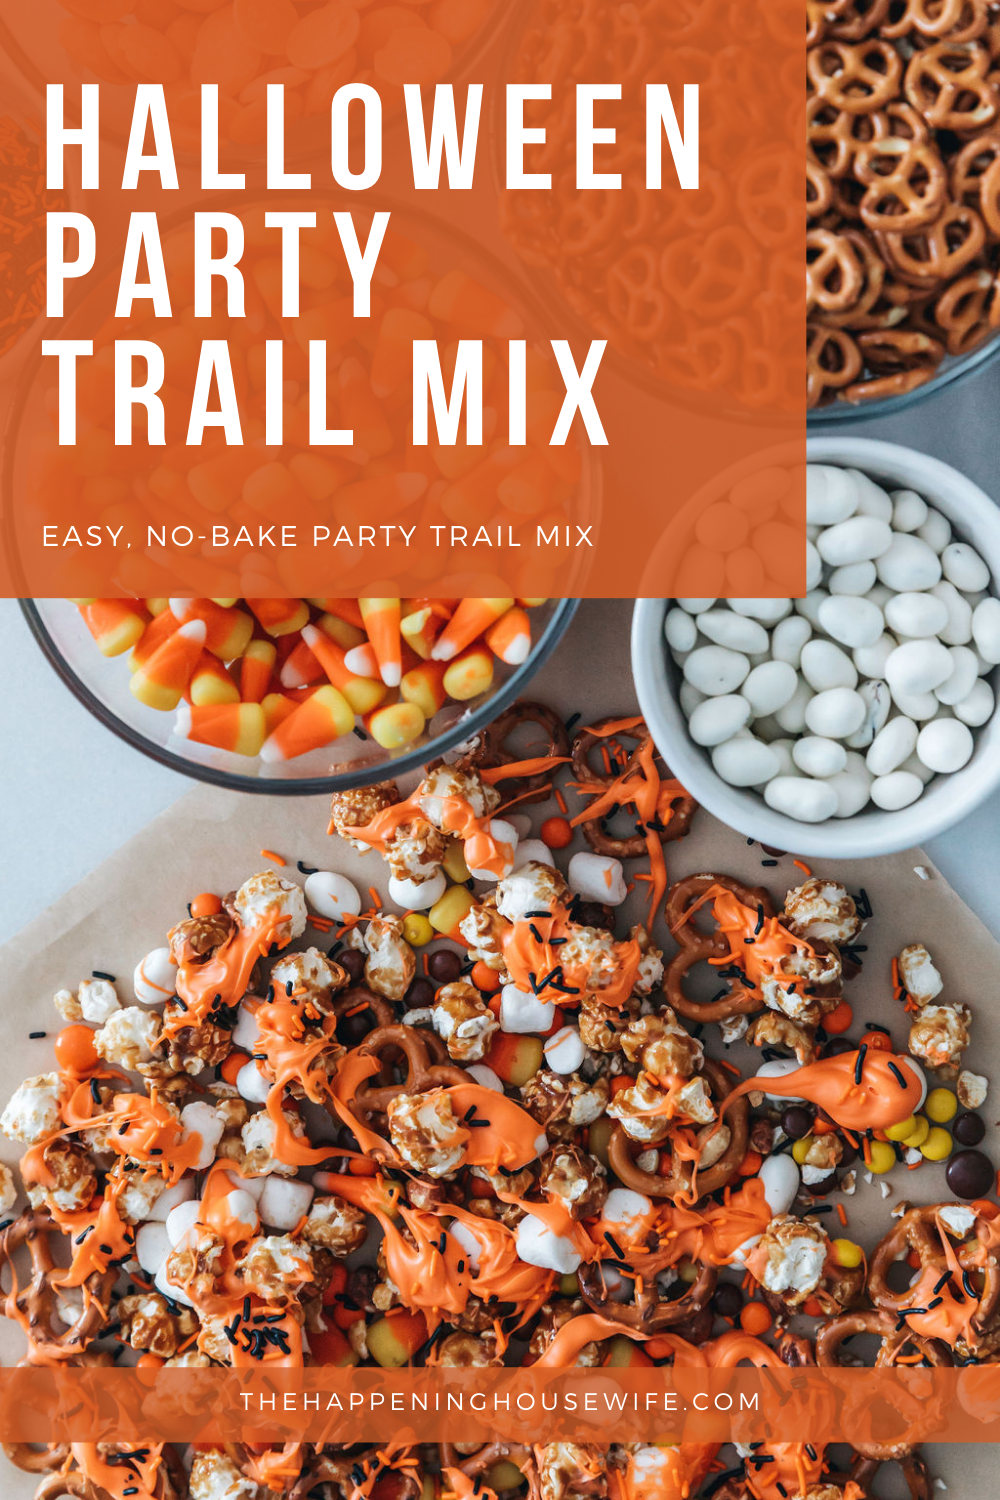 Chocolate Drizzle Trail Mix Monster Mix